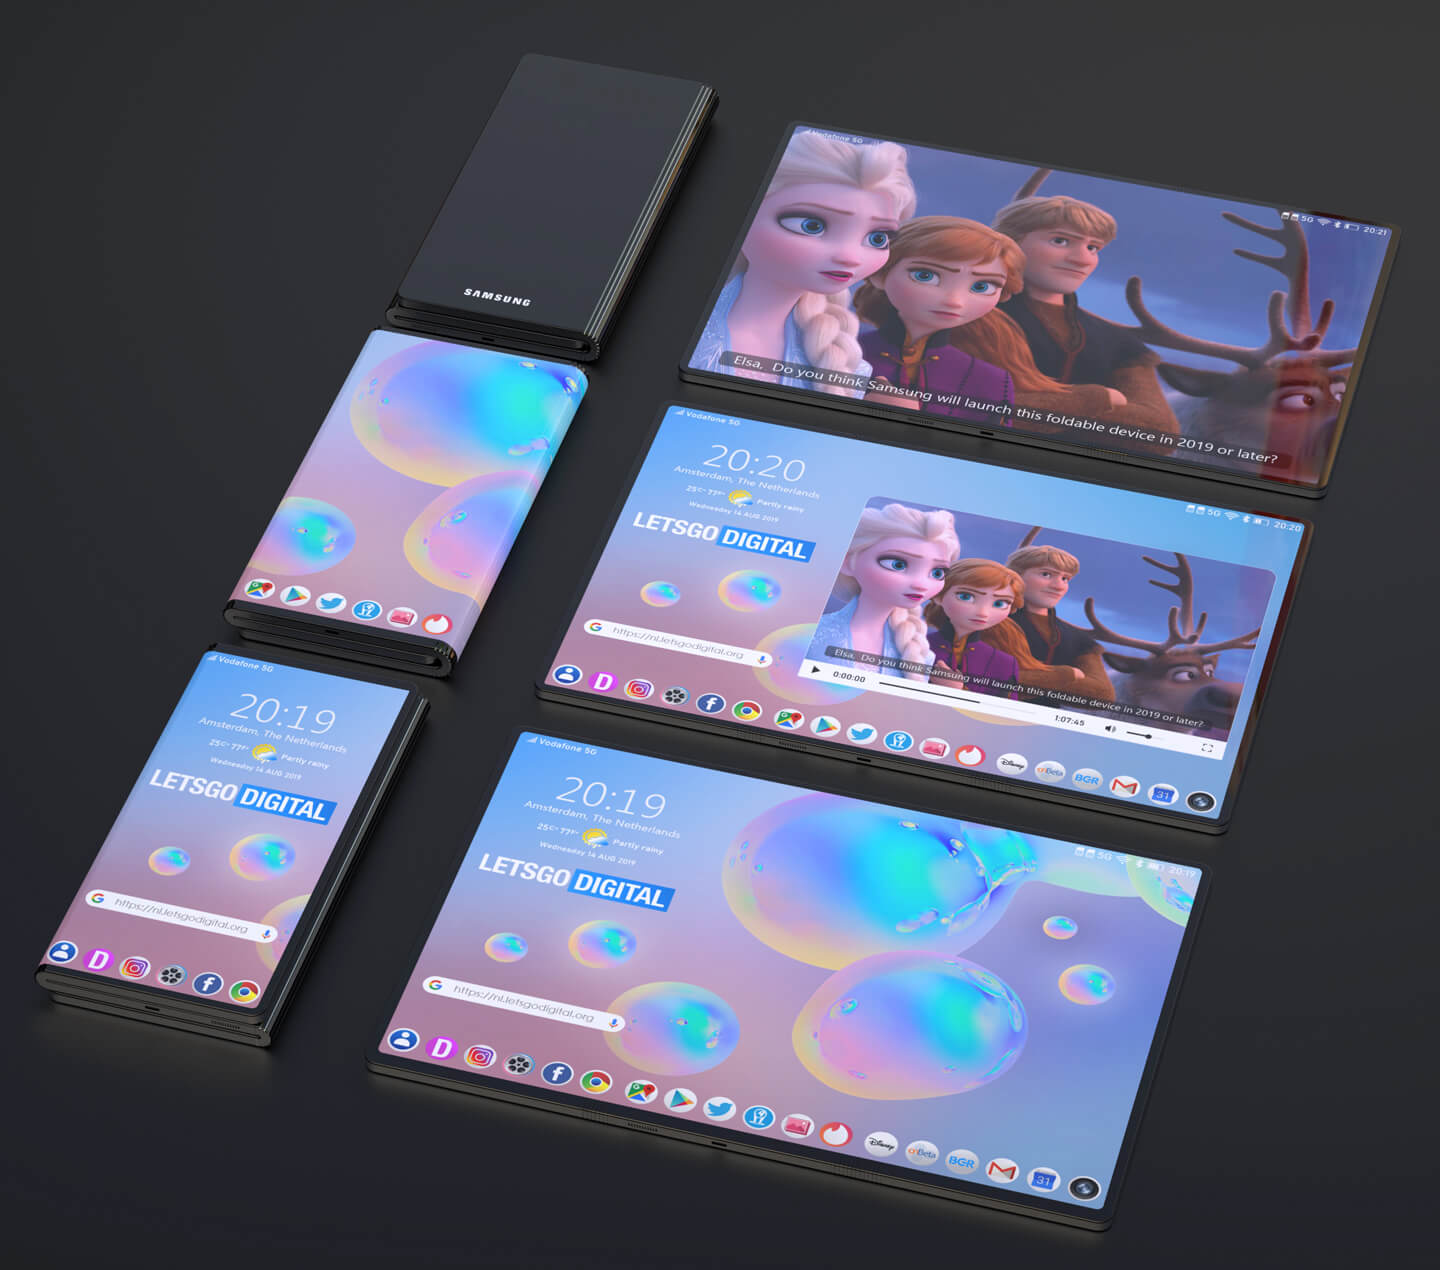 Galaxy foldable phones